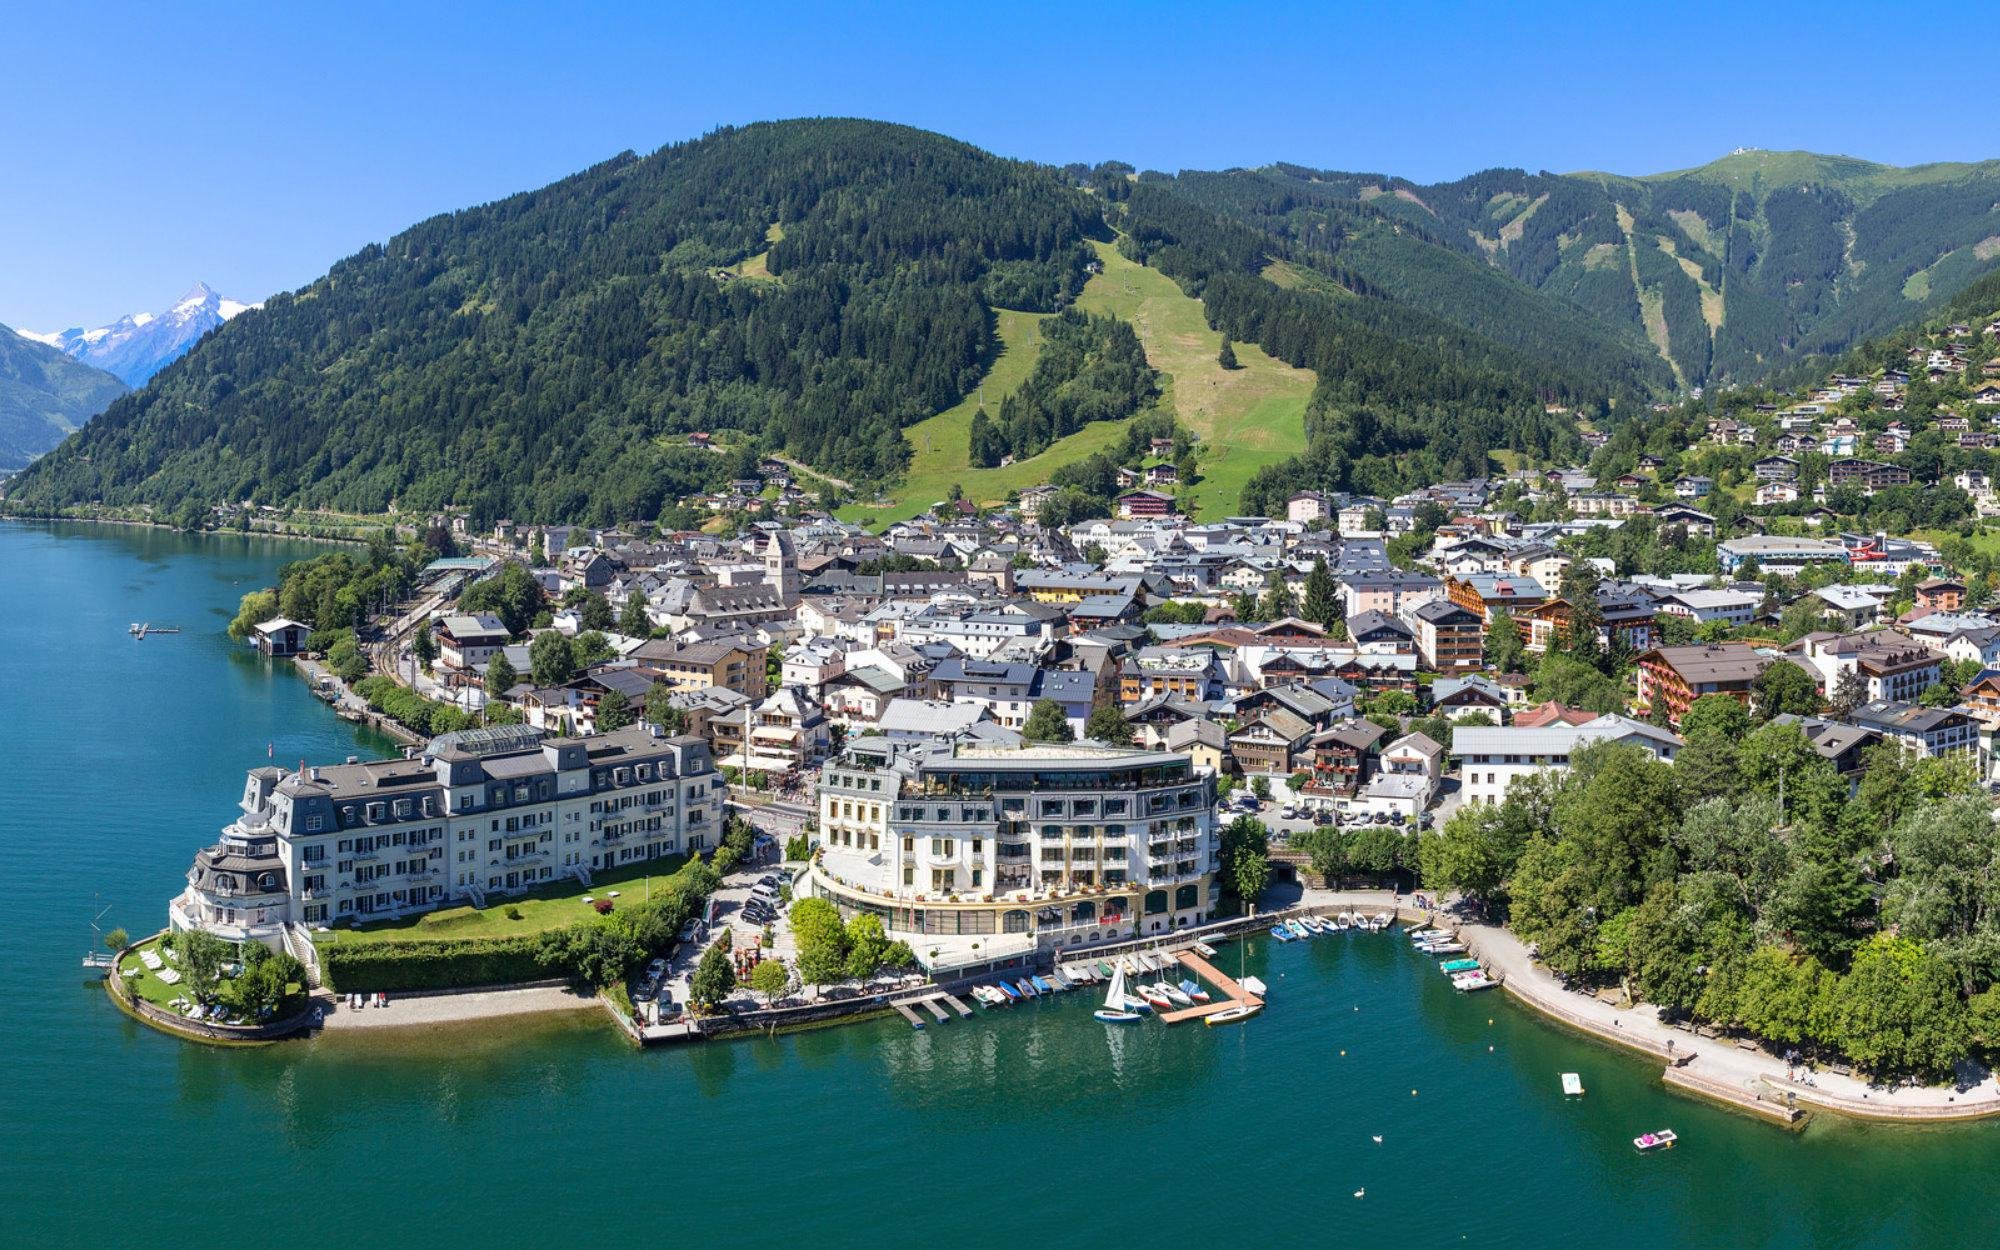 Property with unobstructable lake view in Zell am See Reserved - Salzburgland - Austria